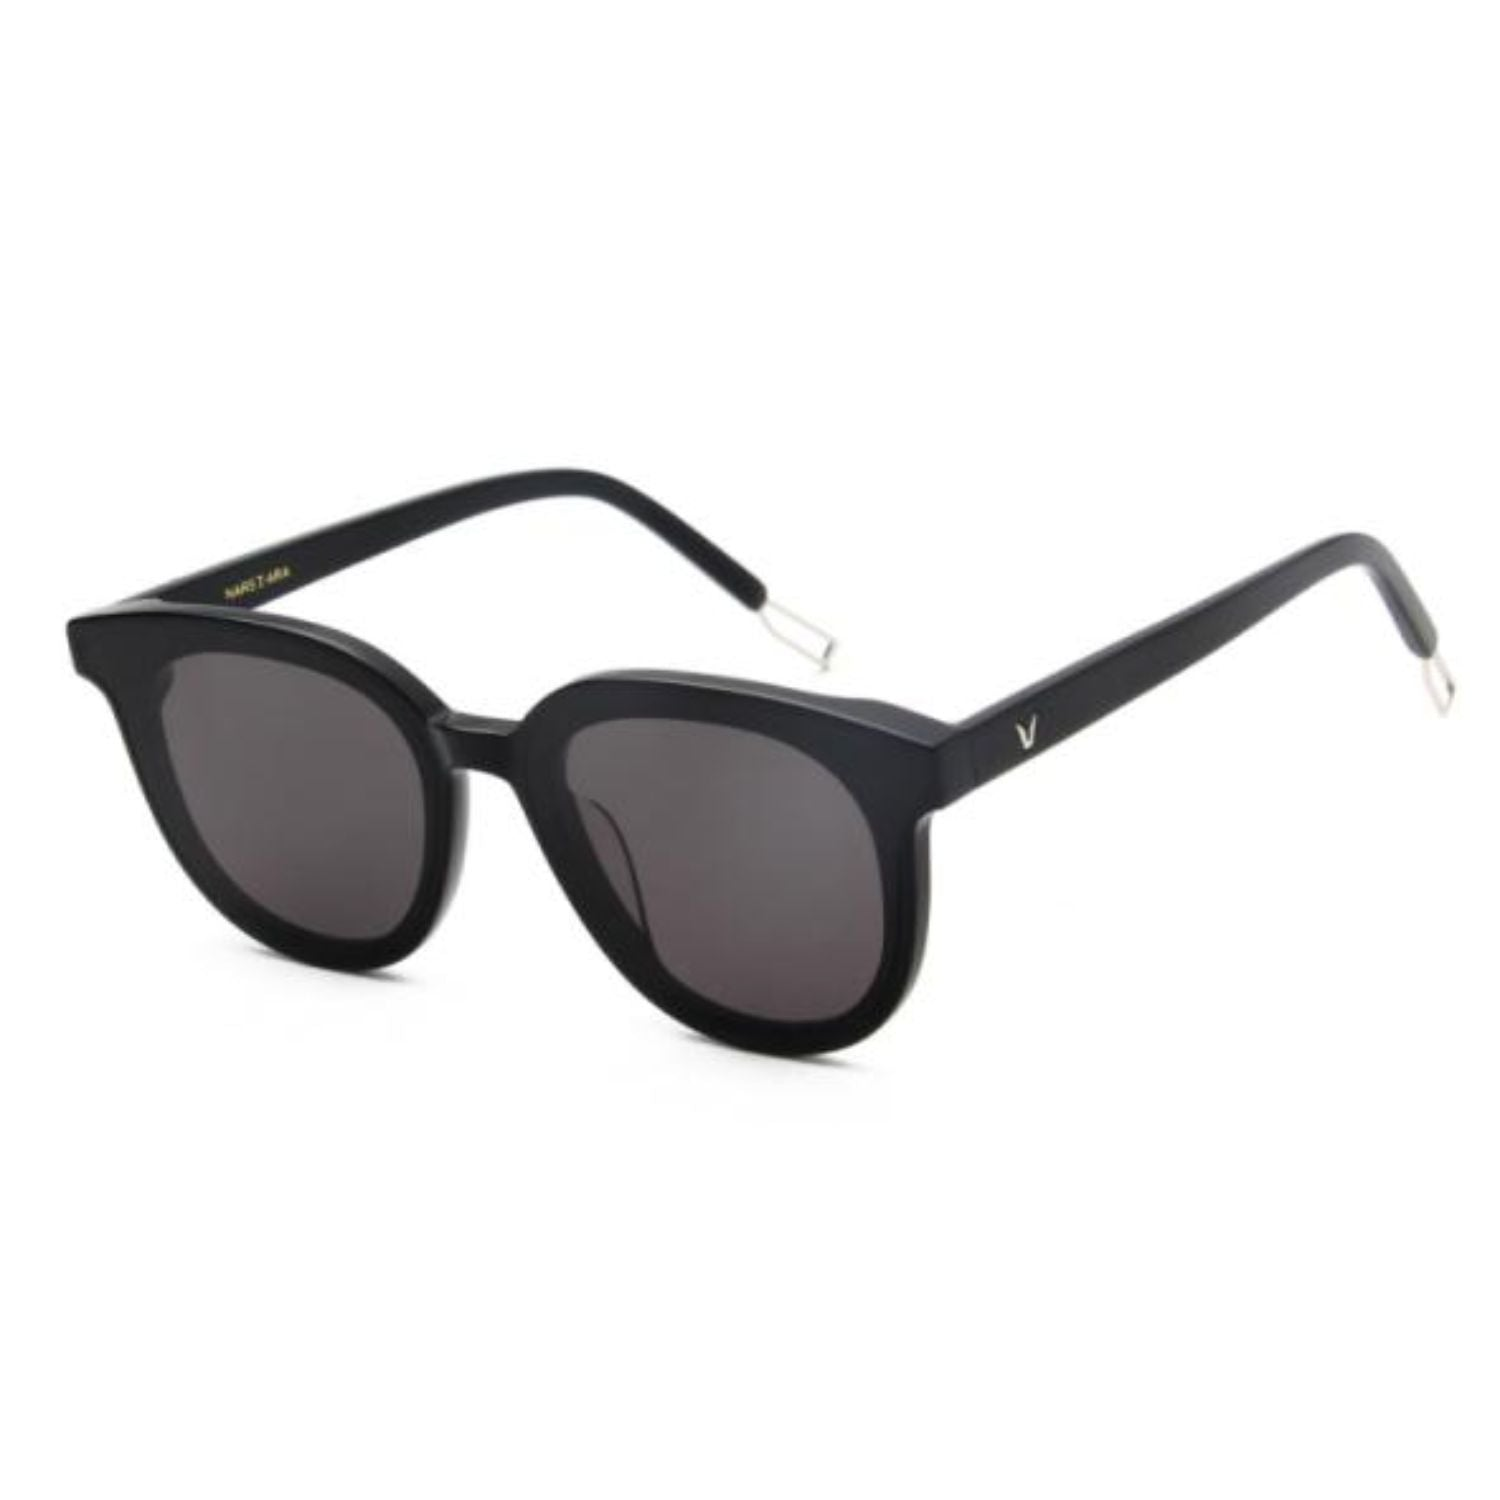 SA4 - Classic Round Circle Fashion Designer Sunglasses